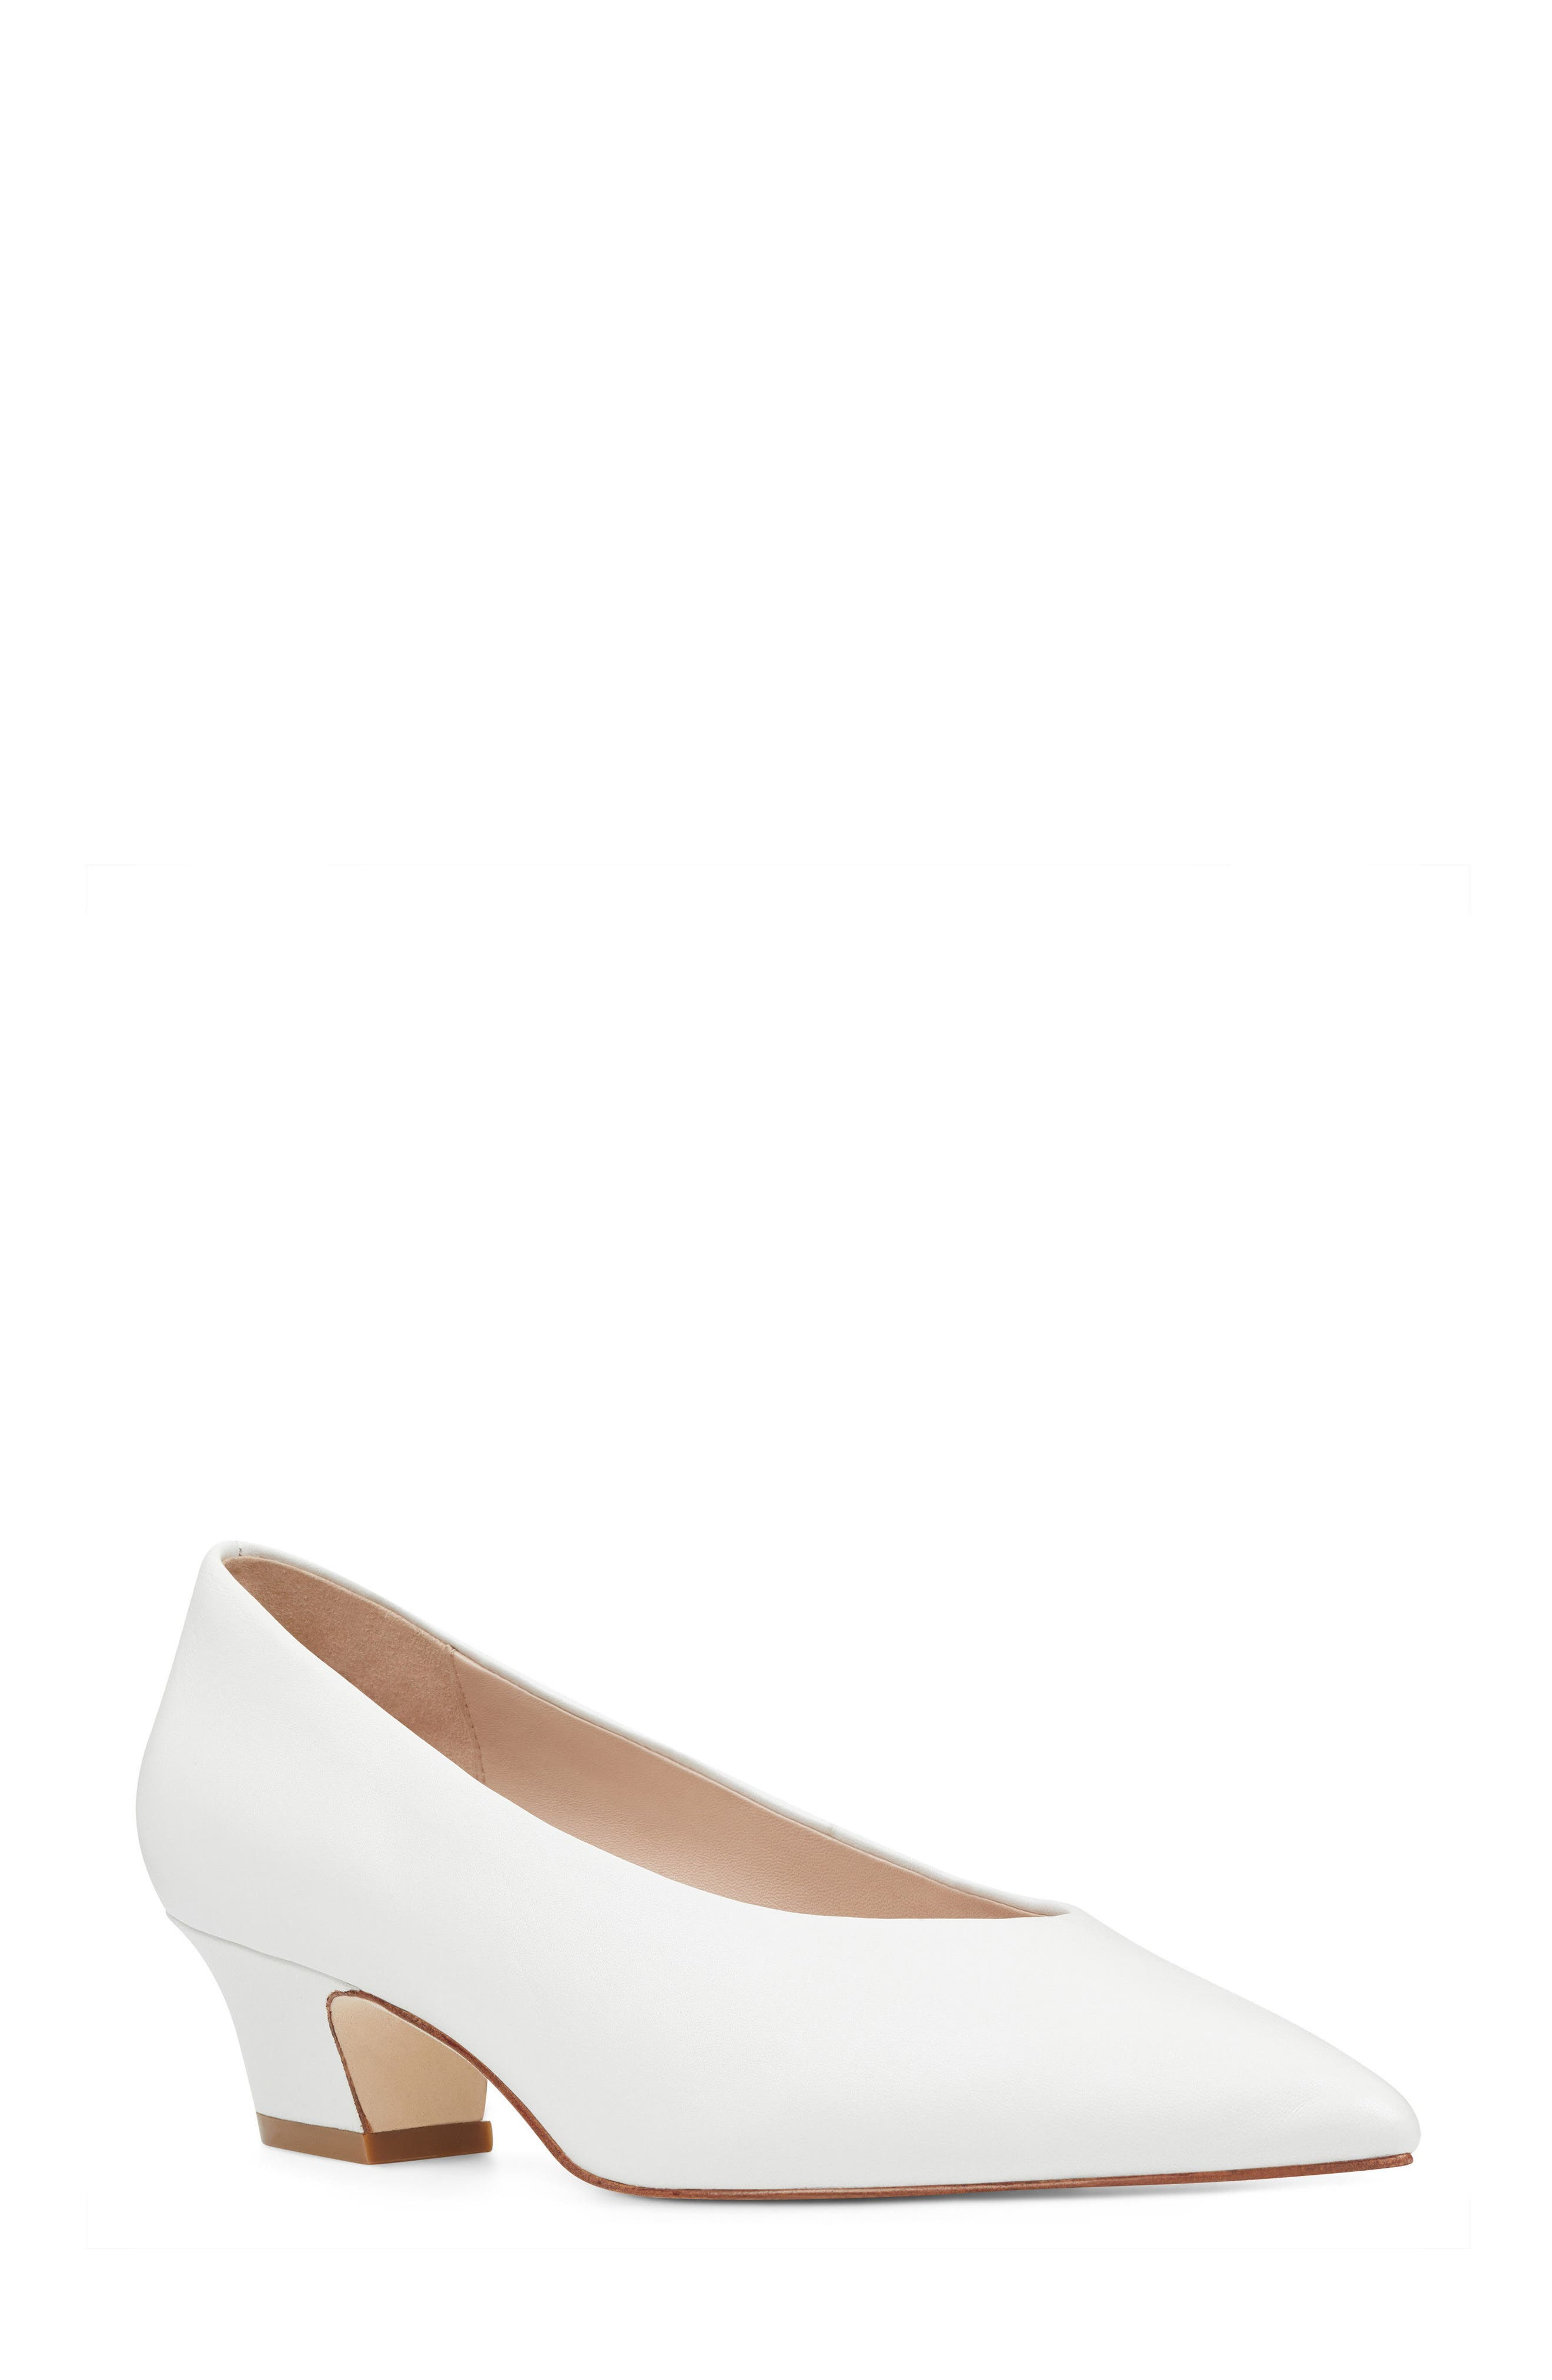 Kendra - 40th Anniversary Capsule Collection Pump,                         Main,                         color, White Leather